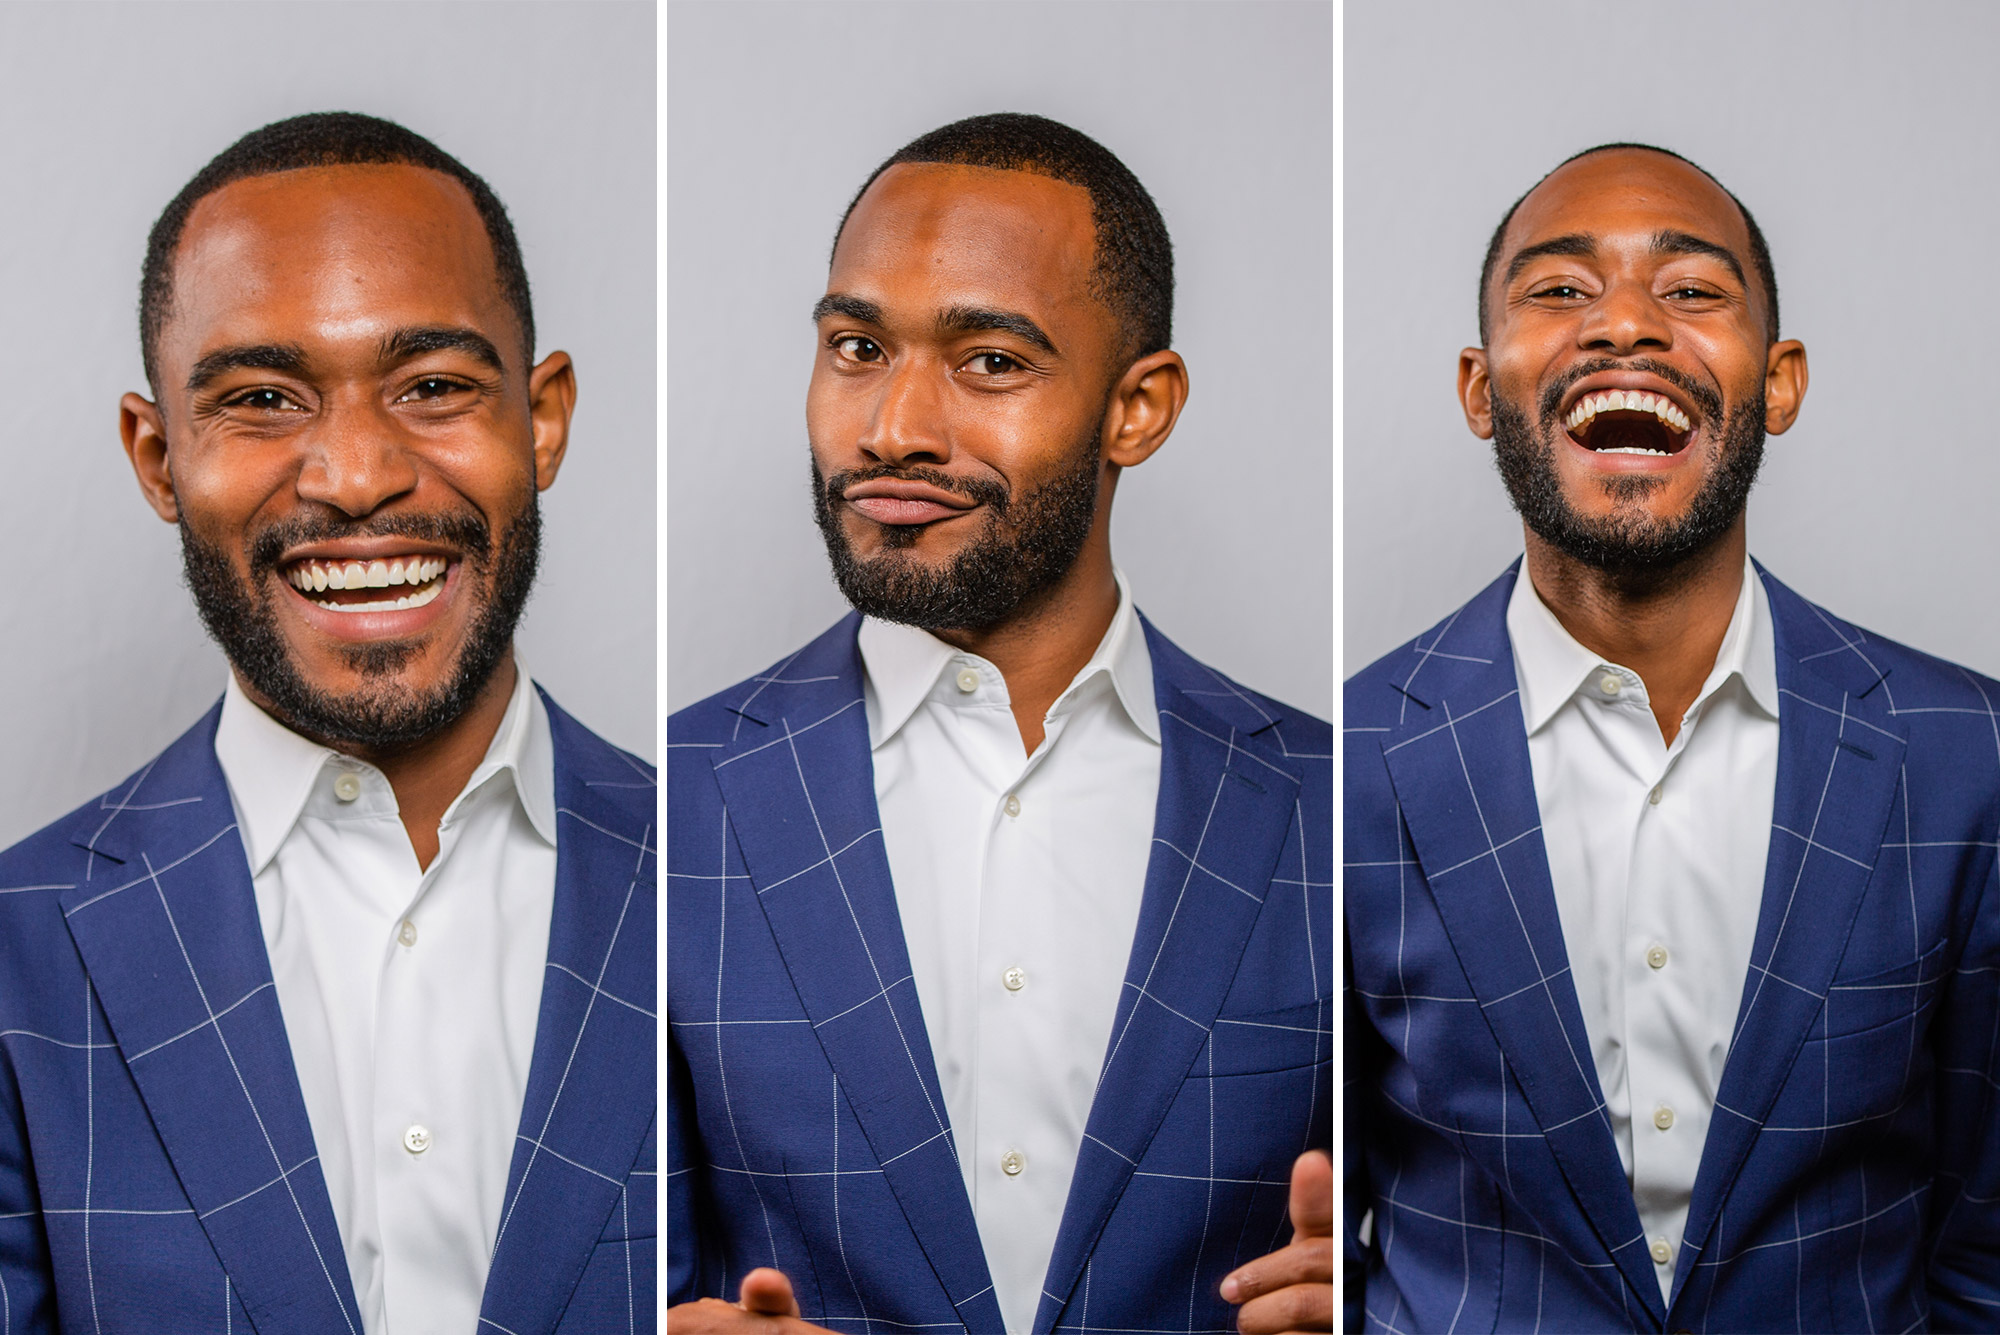 A triptych of photos of Johnathan Allen smiling and laughing